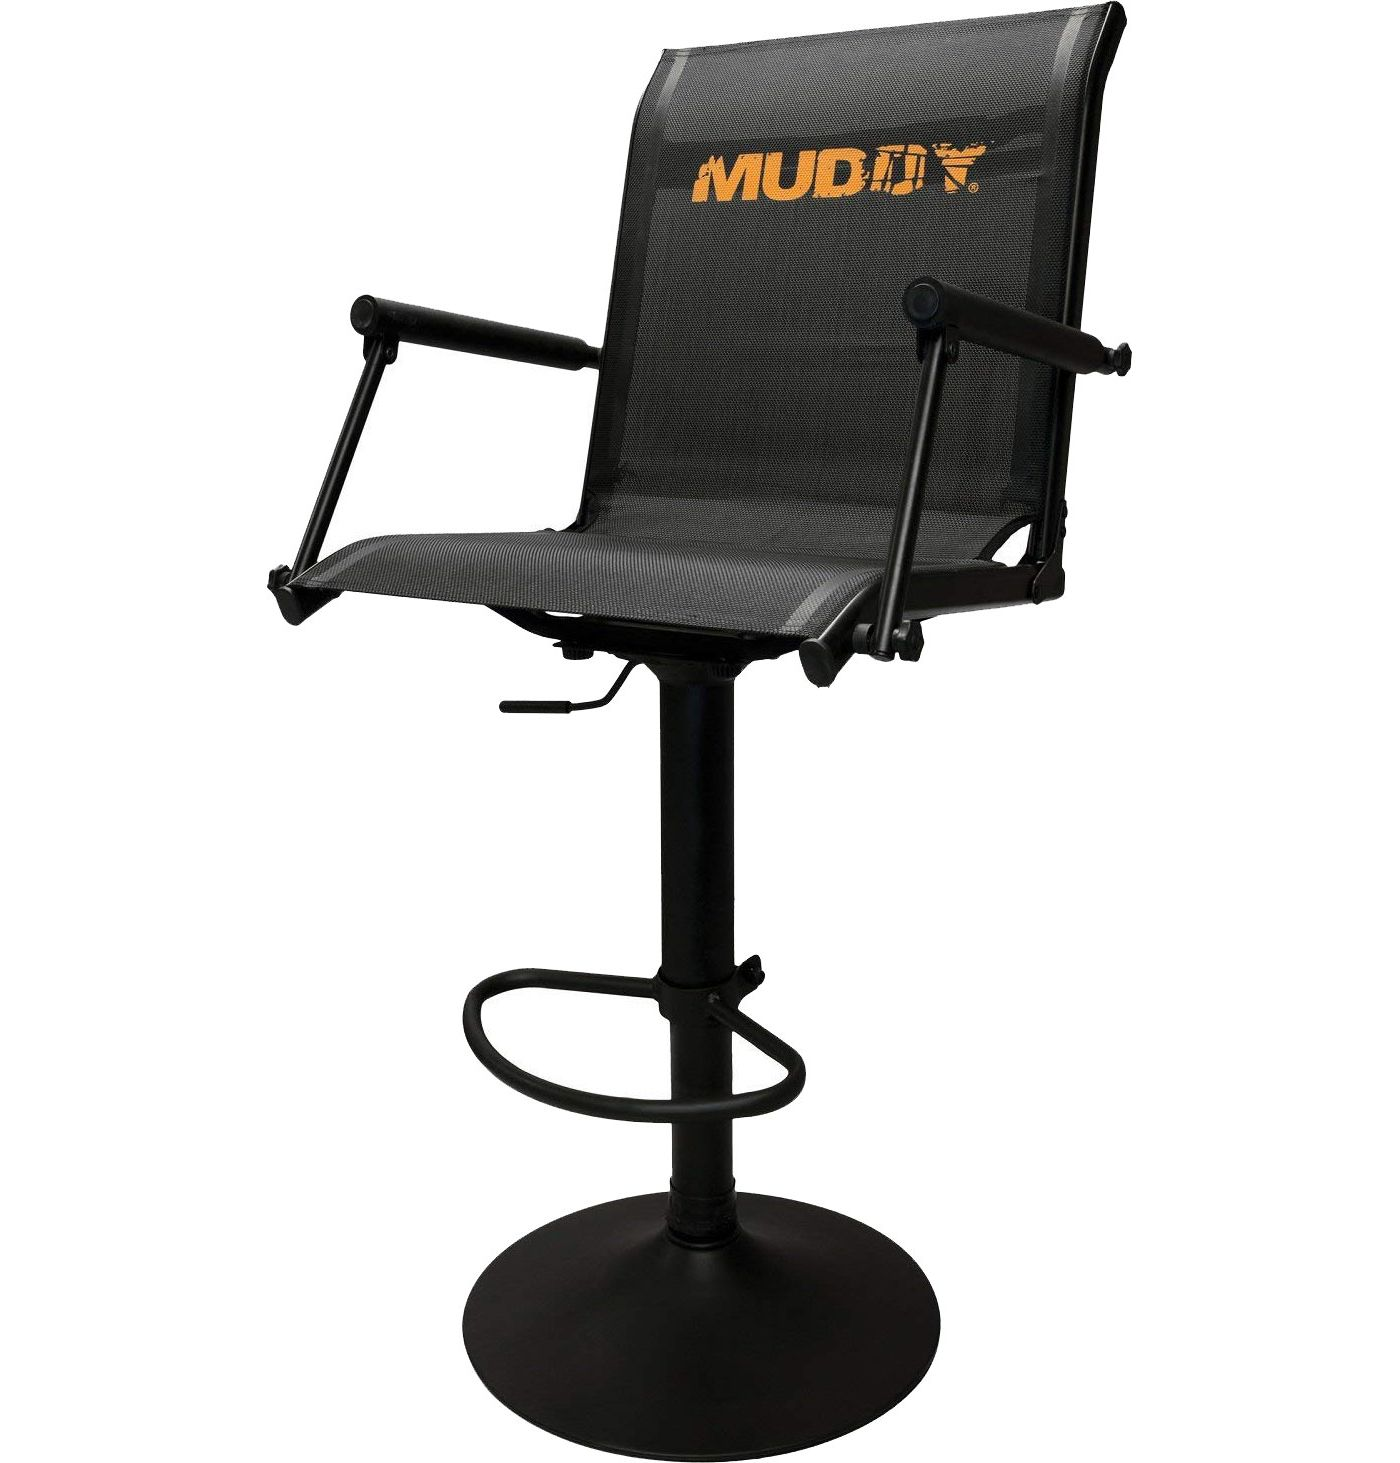 Muddy Swivel-Ease Xtreme Blind Chair